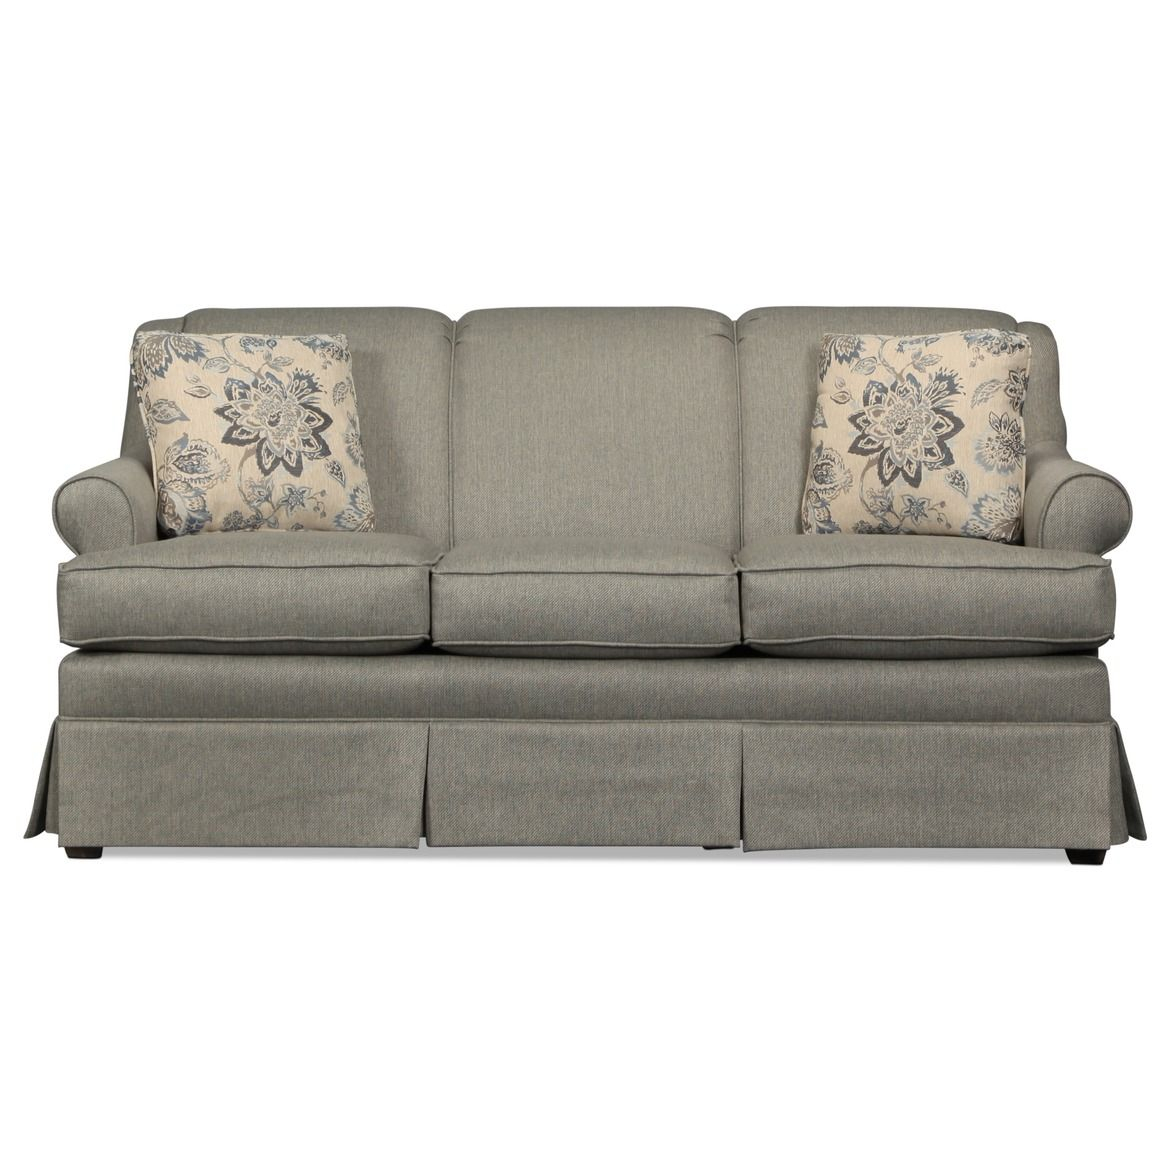 Beatrice Full Sleeper Sofa Levin Furniture Living Room intended for proportions 1170 X 1170